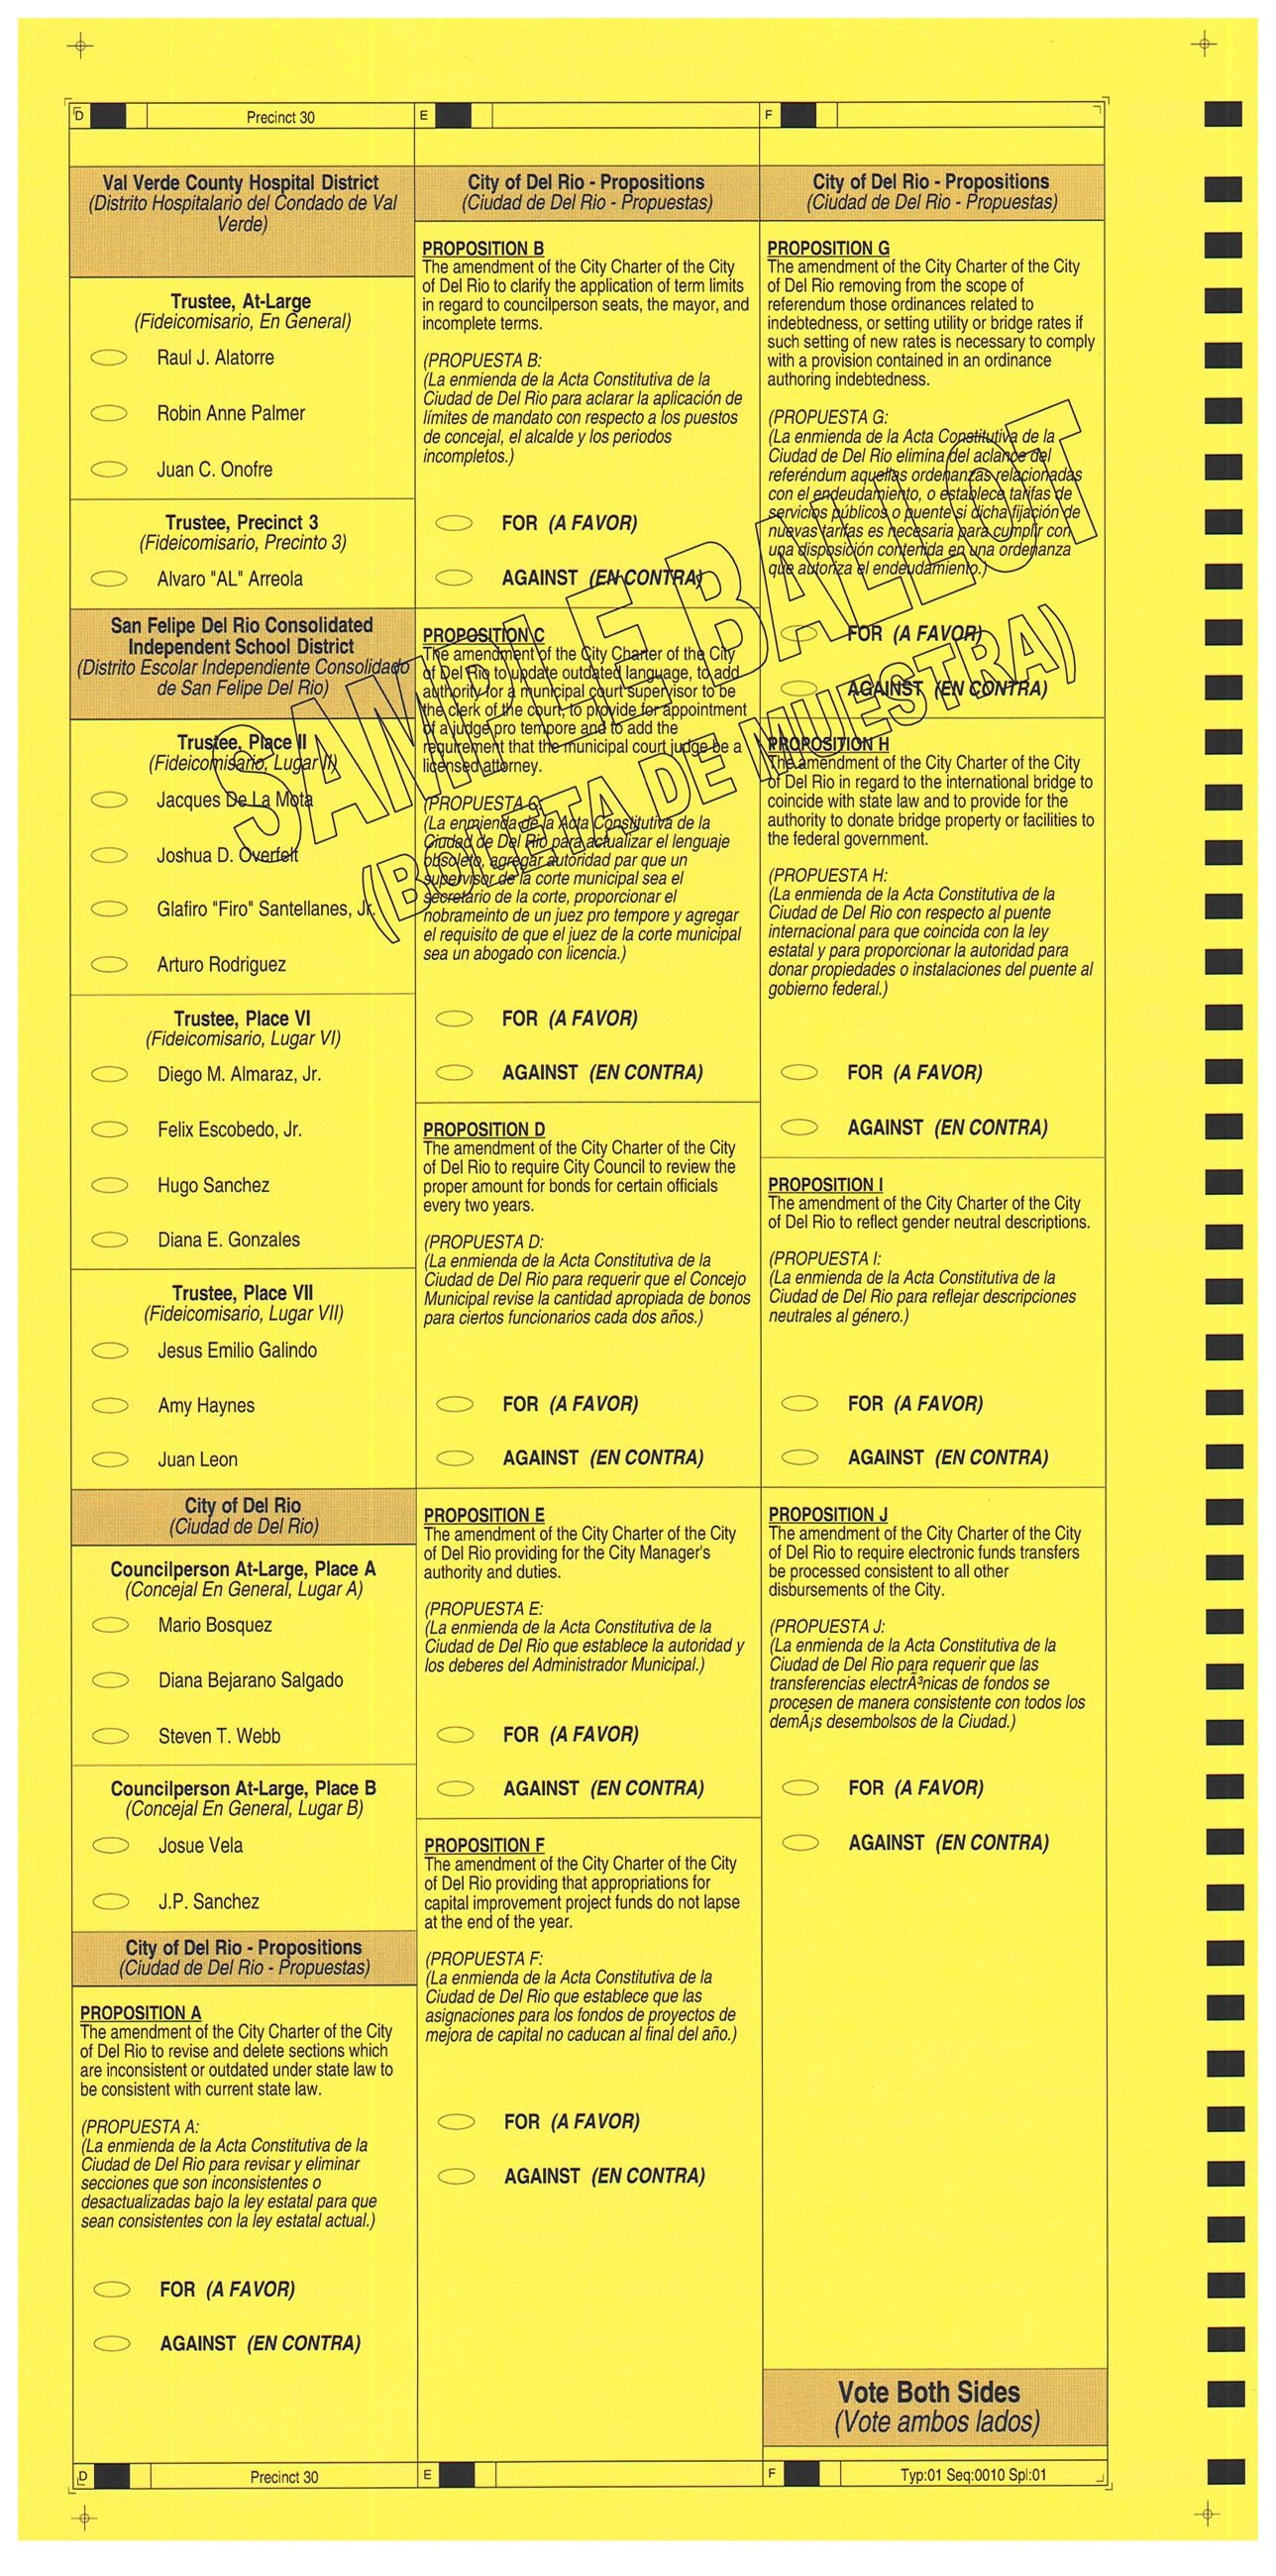 PRECINCT 30 SAMPLE BALLOT BACK